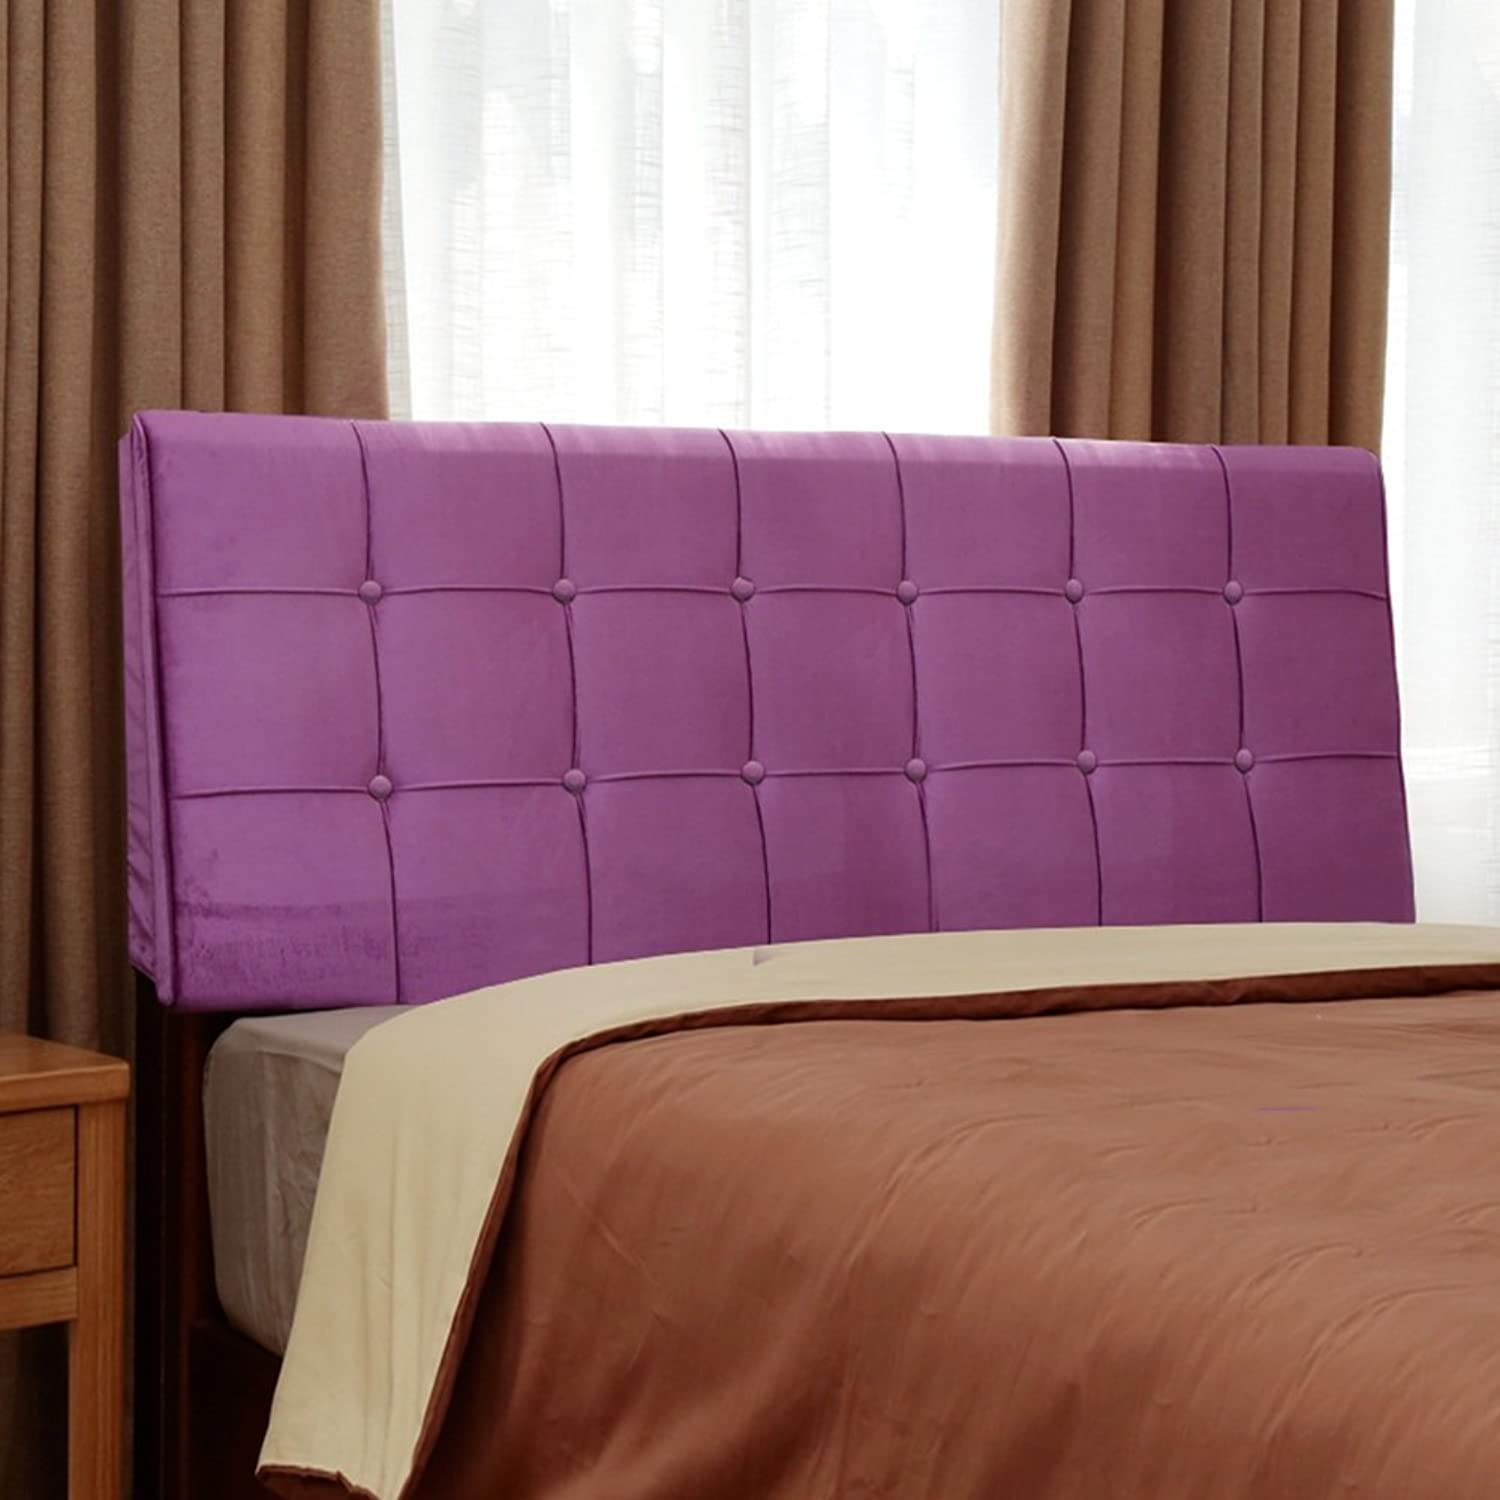 WENZHE Upholstered Fabric Headboard Bedside Cushion Pads Cover Bed Wedges Backrest Waist Pad Soft Case Bedside Large Back Washable, Cloth, There Is Headboard   No Headboard, 5 colors, 7 Sizes ( color   3  , Size   No headboard-120cm )